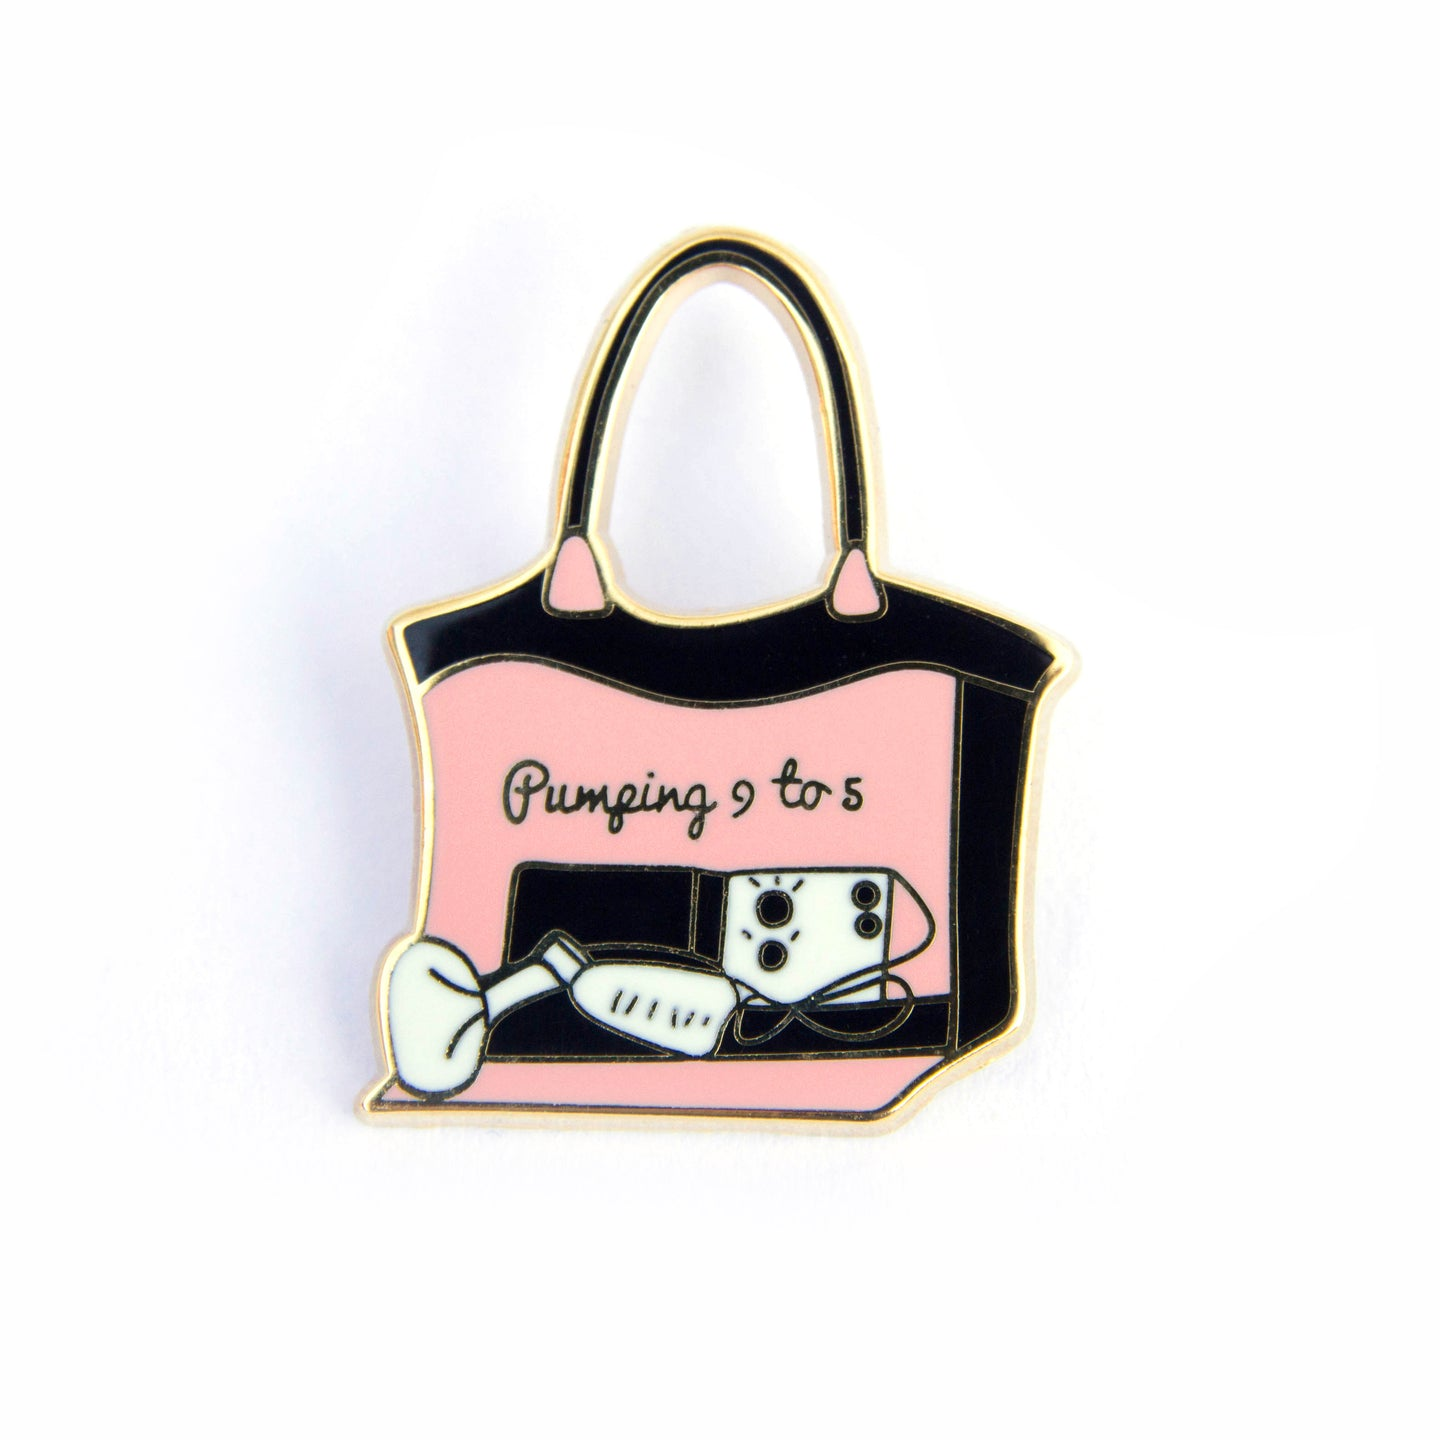 Pumping 9 to 5 Enamel Pin